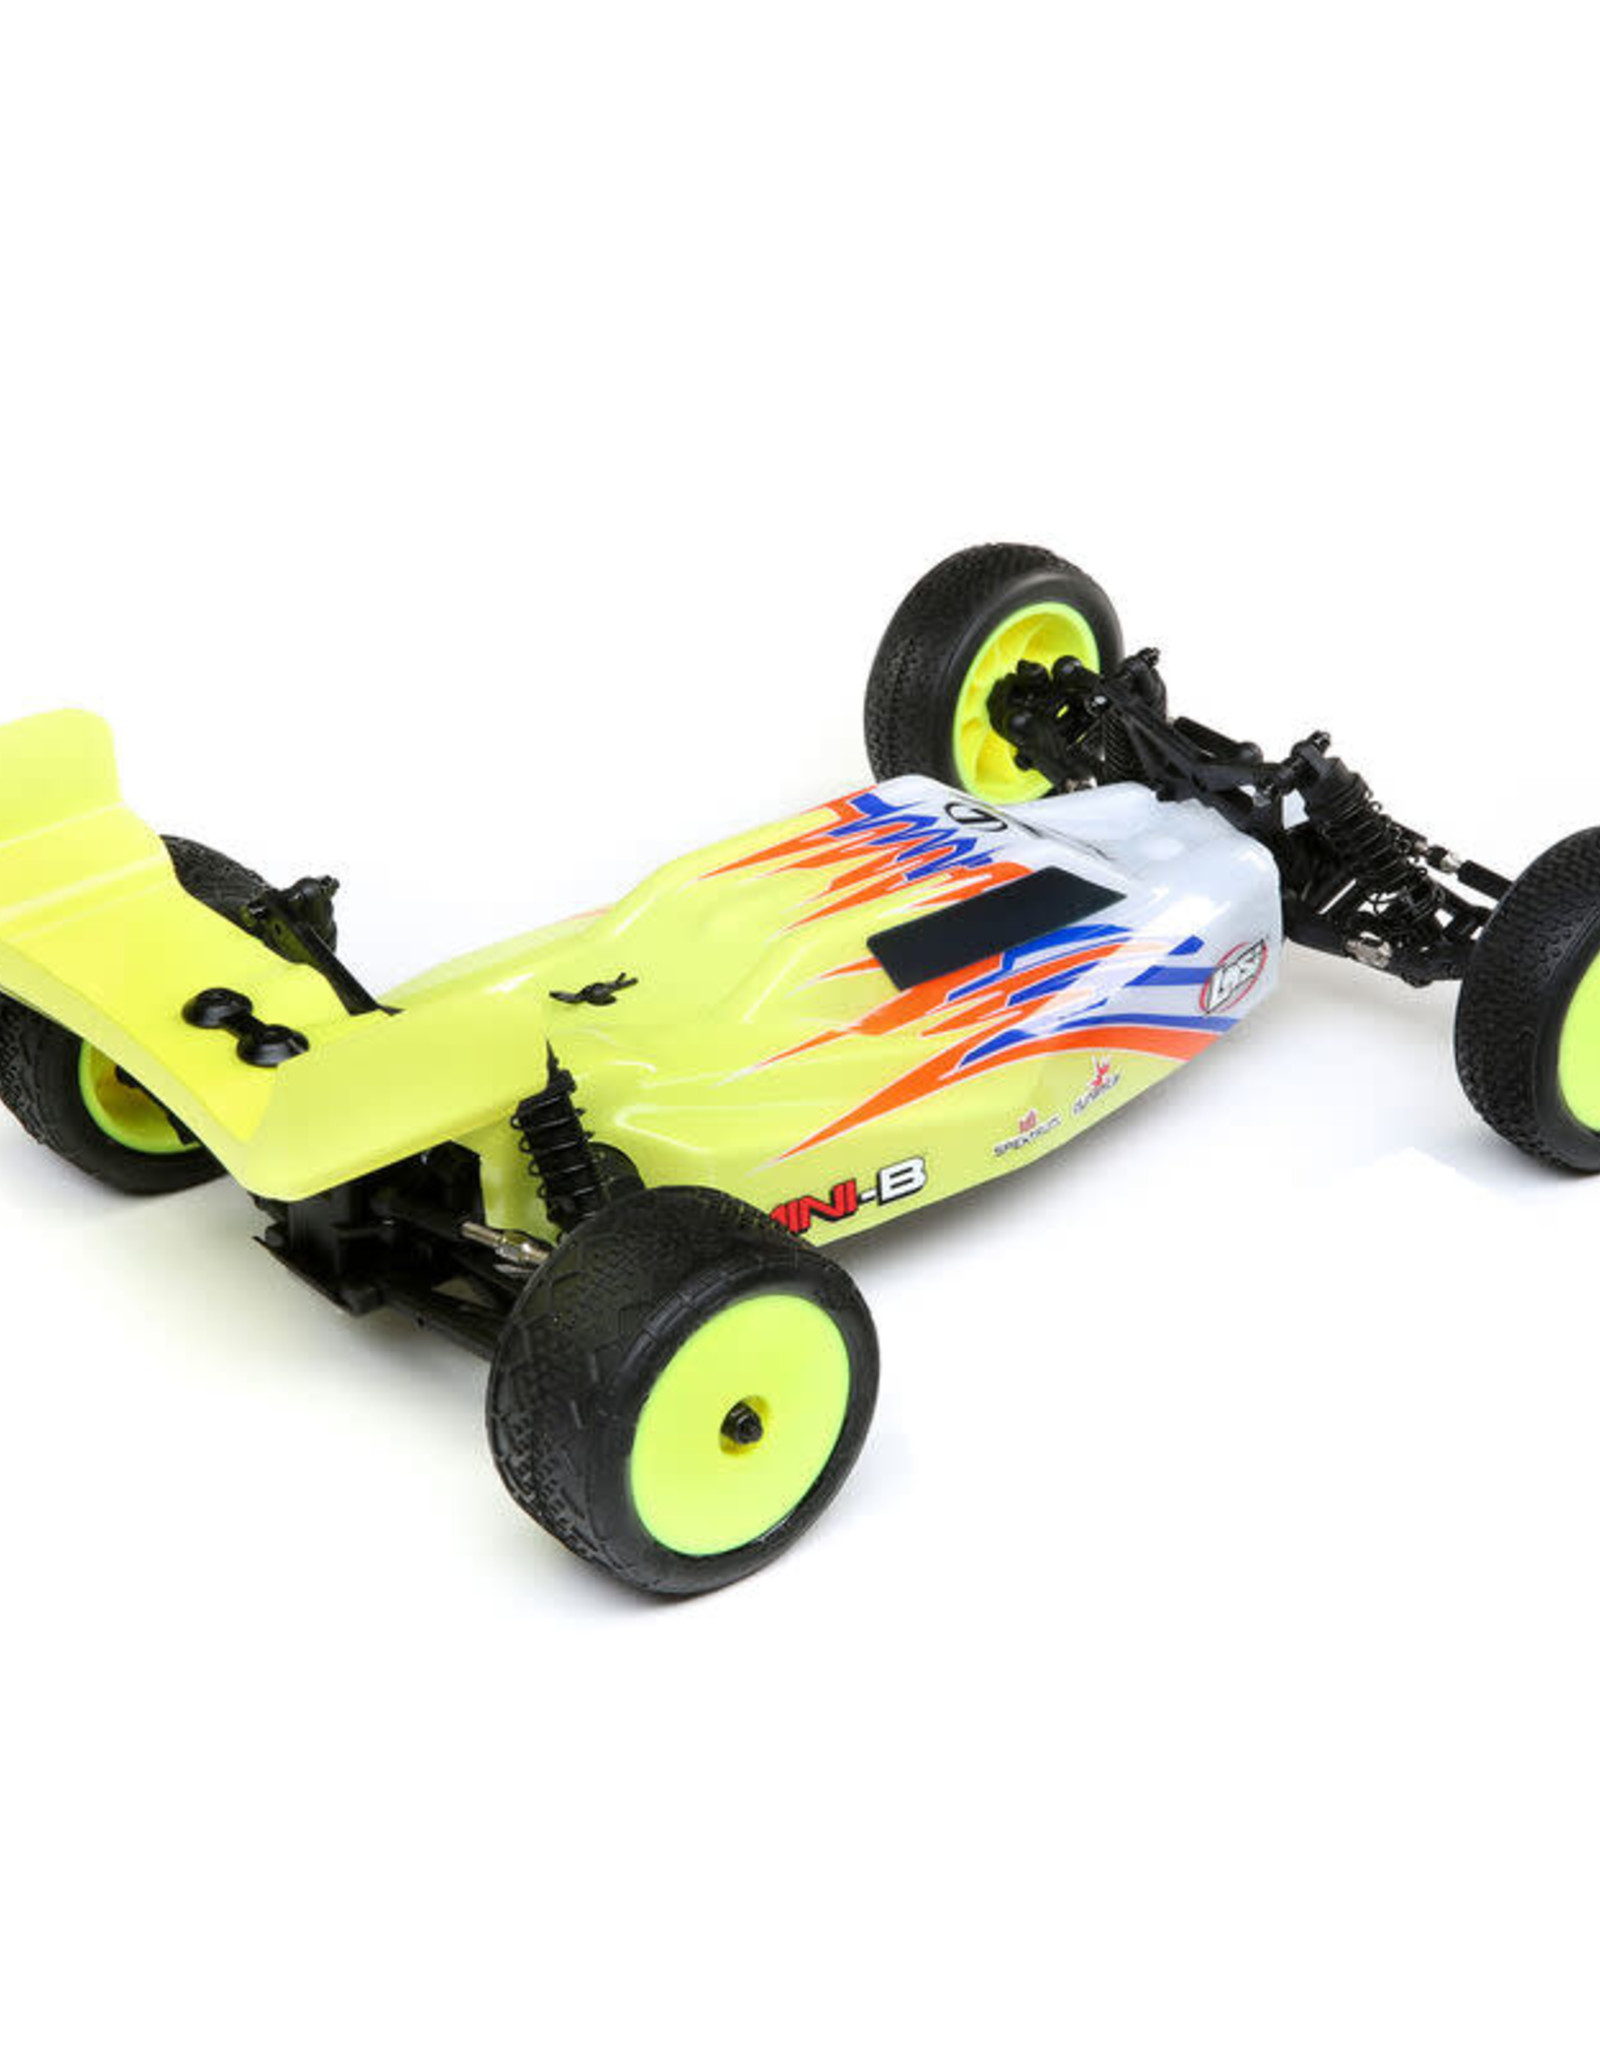 Losi LOS01016T3 1/16 Mini-B Brushed RTR 2WD Buggy, Yellow/White